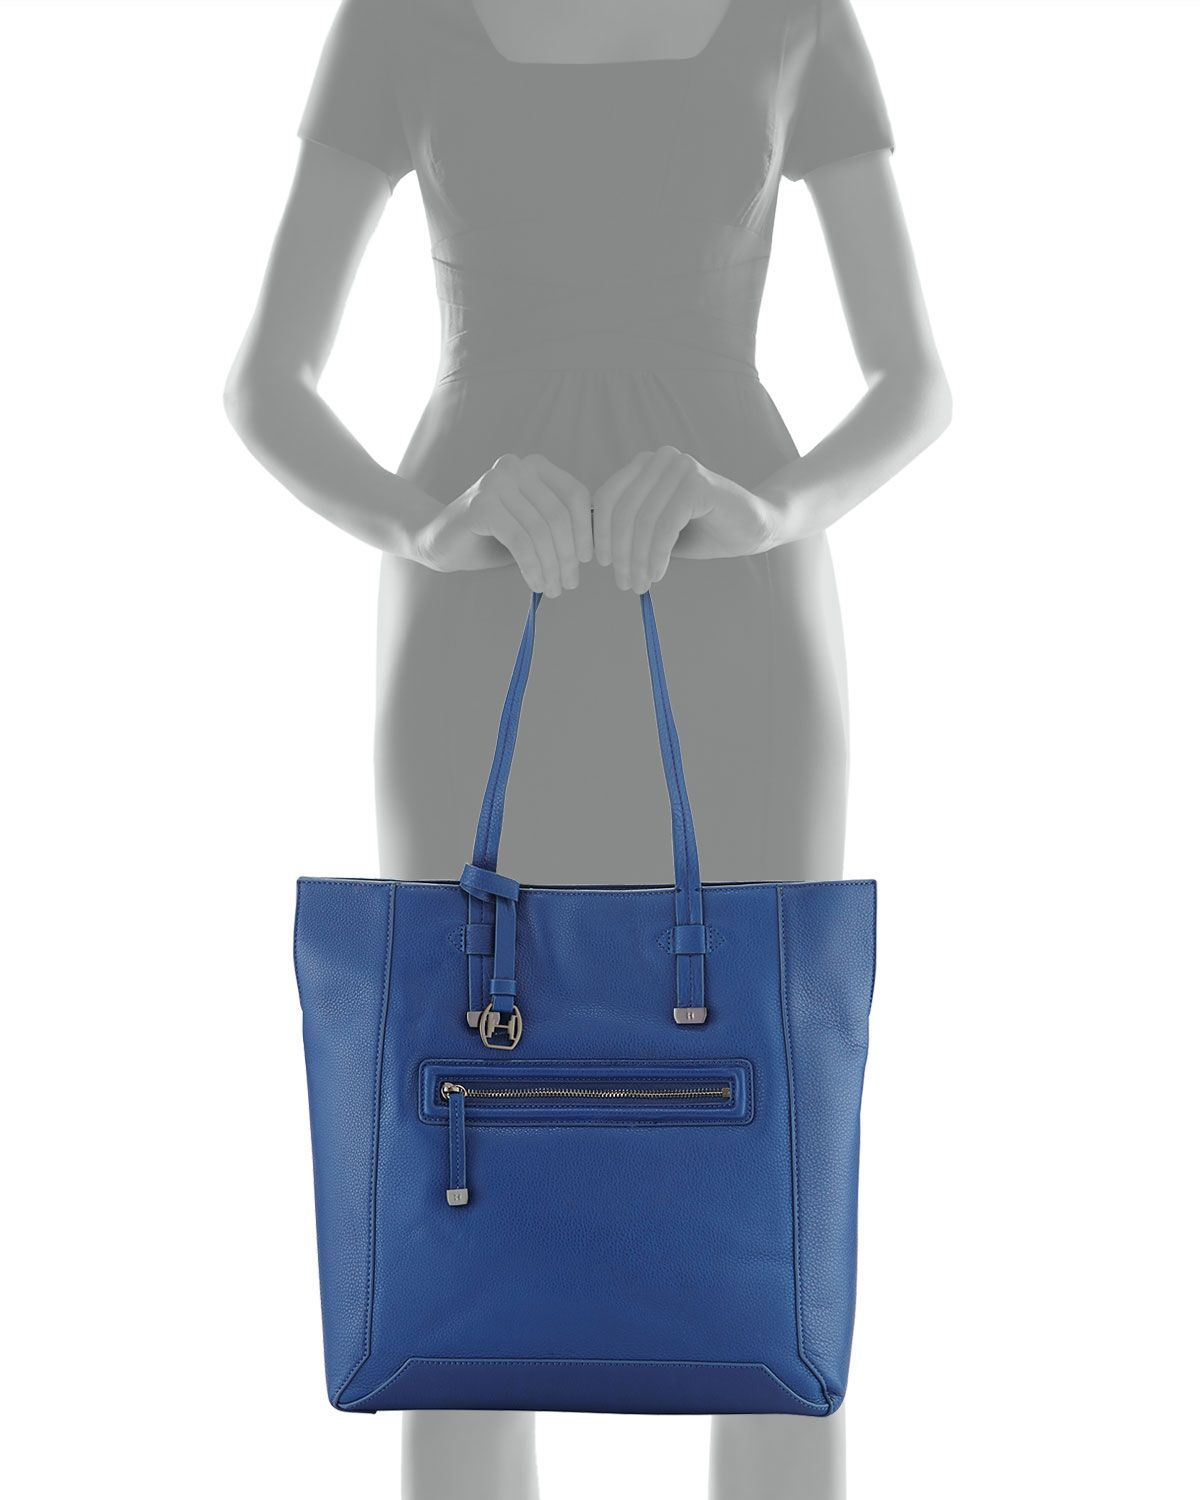 9aec76003f Halston Leather North South Tote Bag